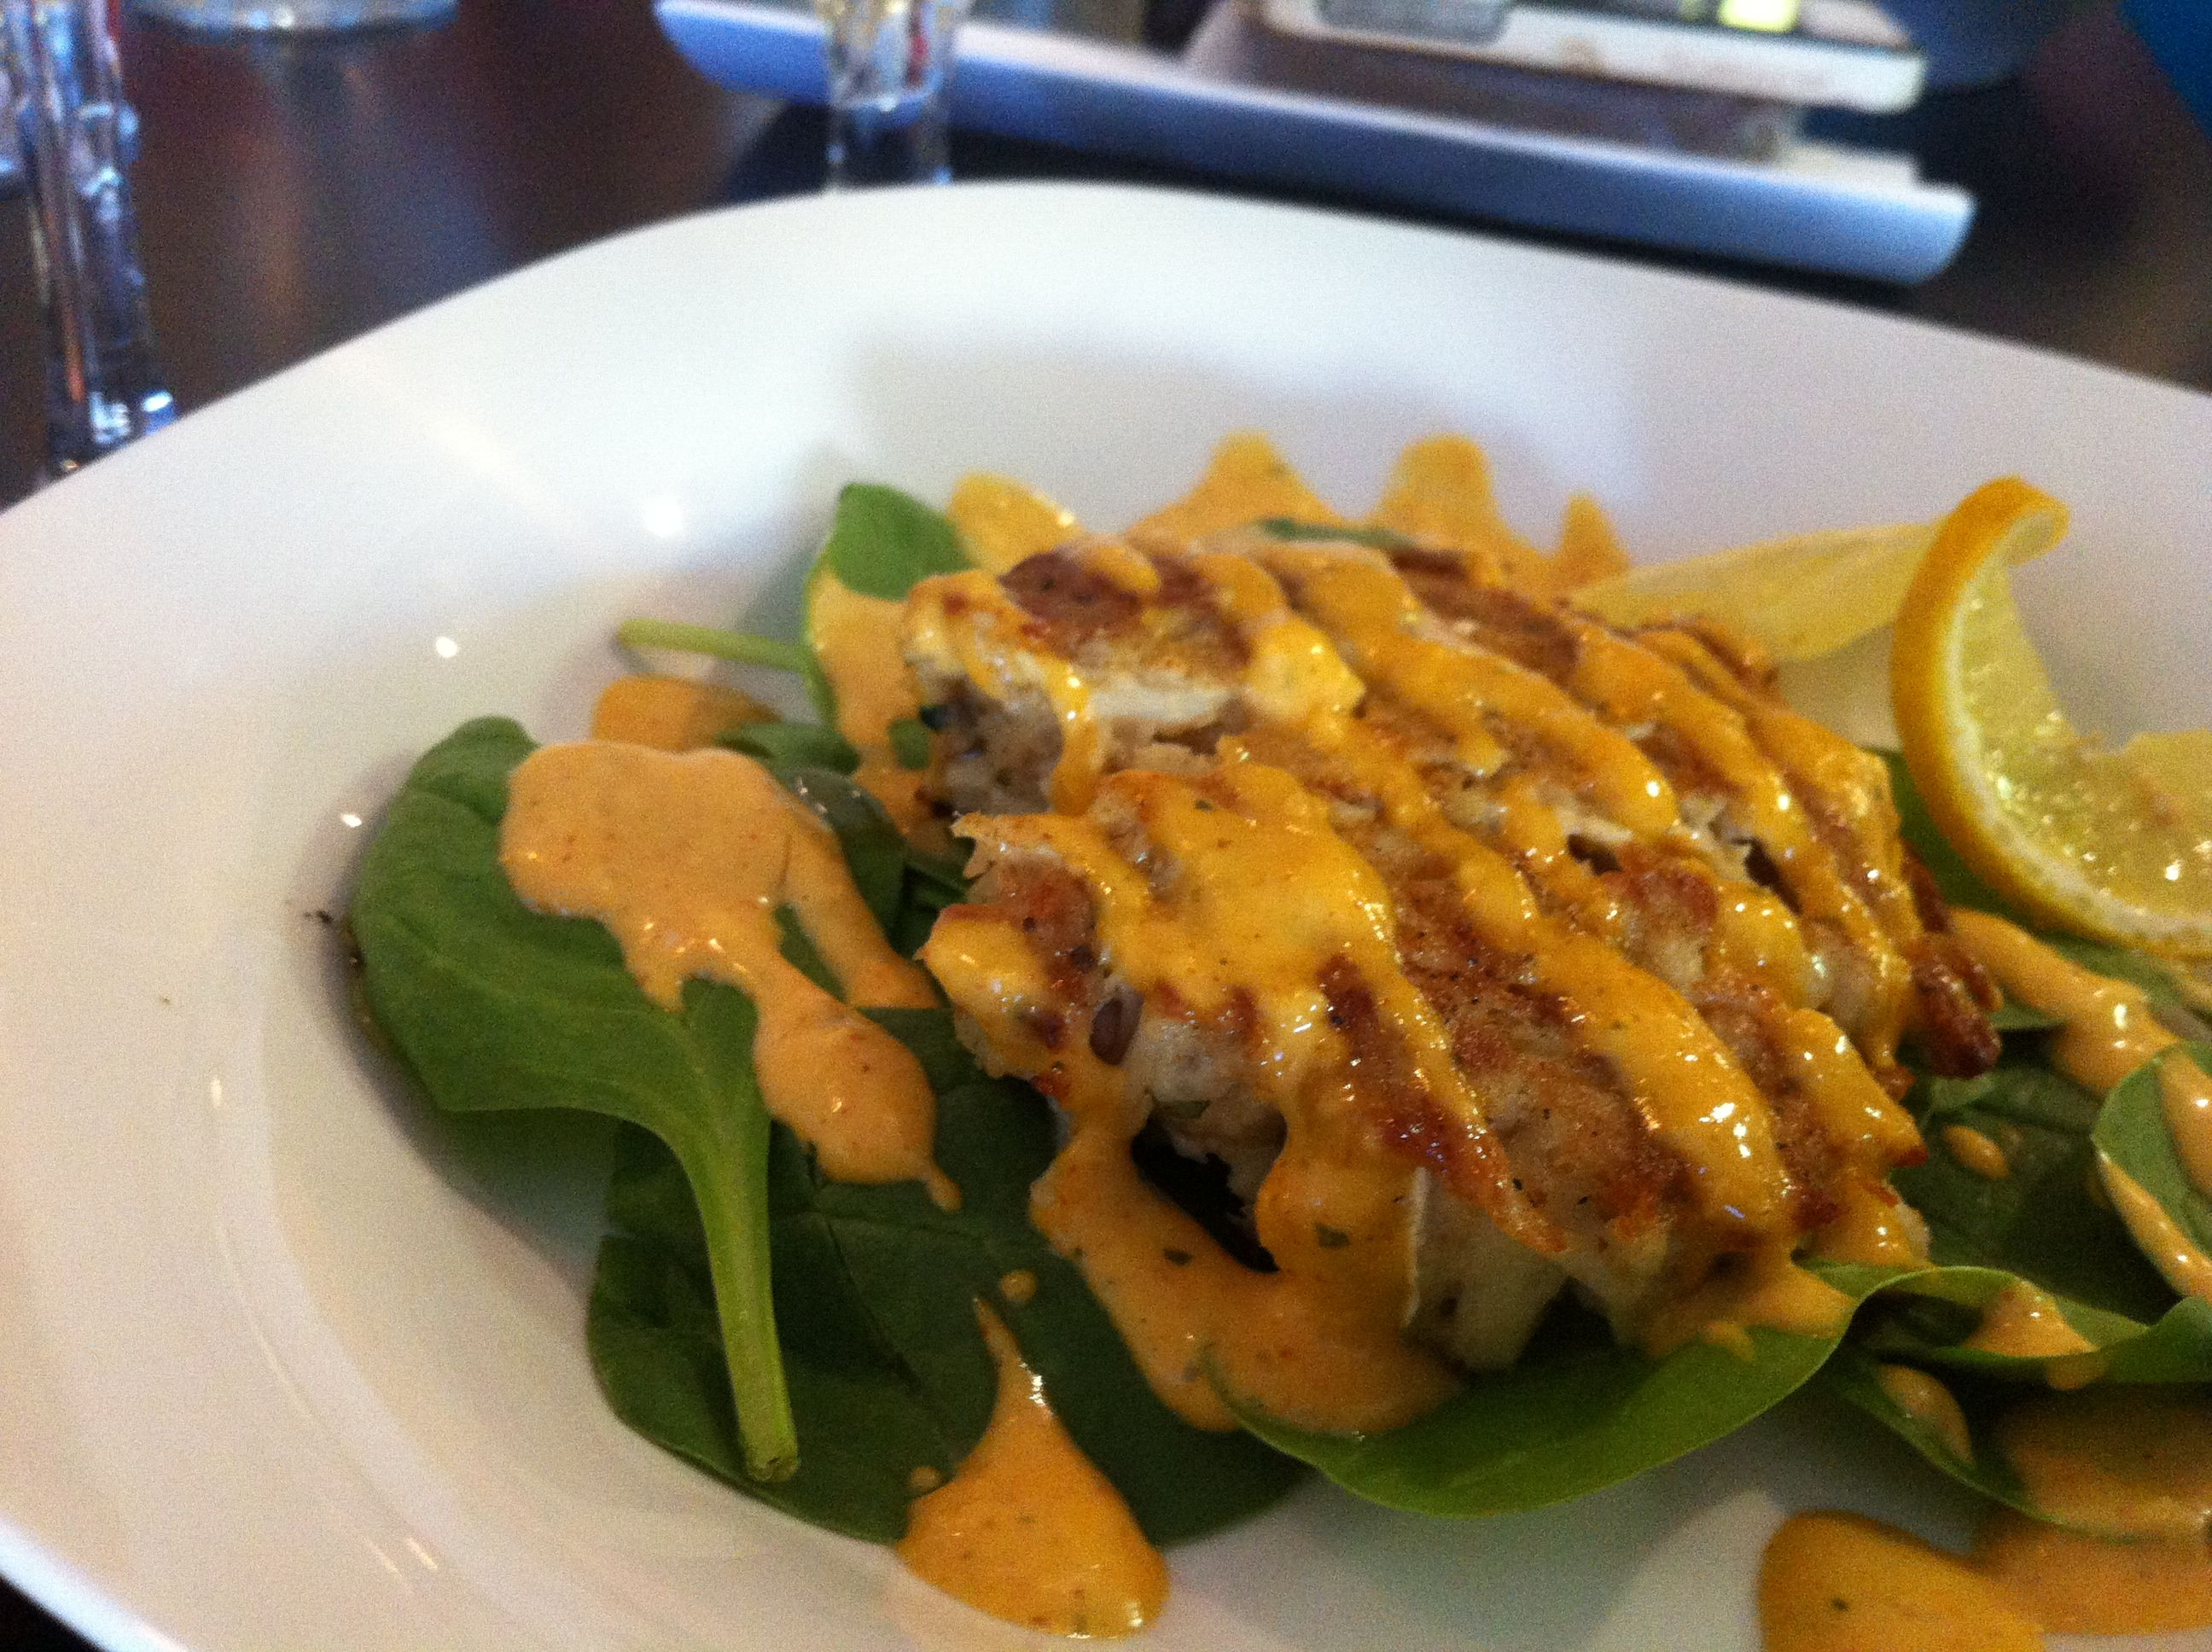 Lovely crab cakes nearzero filler at piccatas http